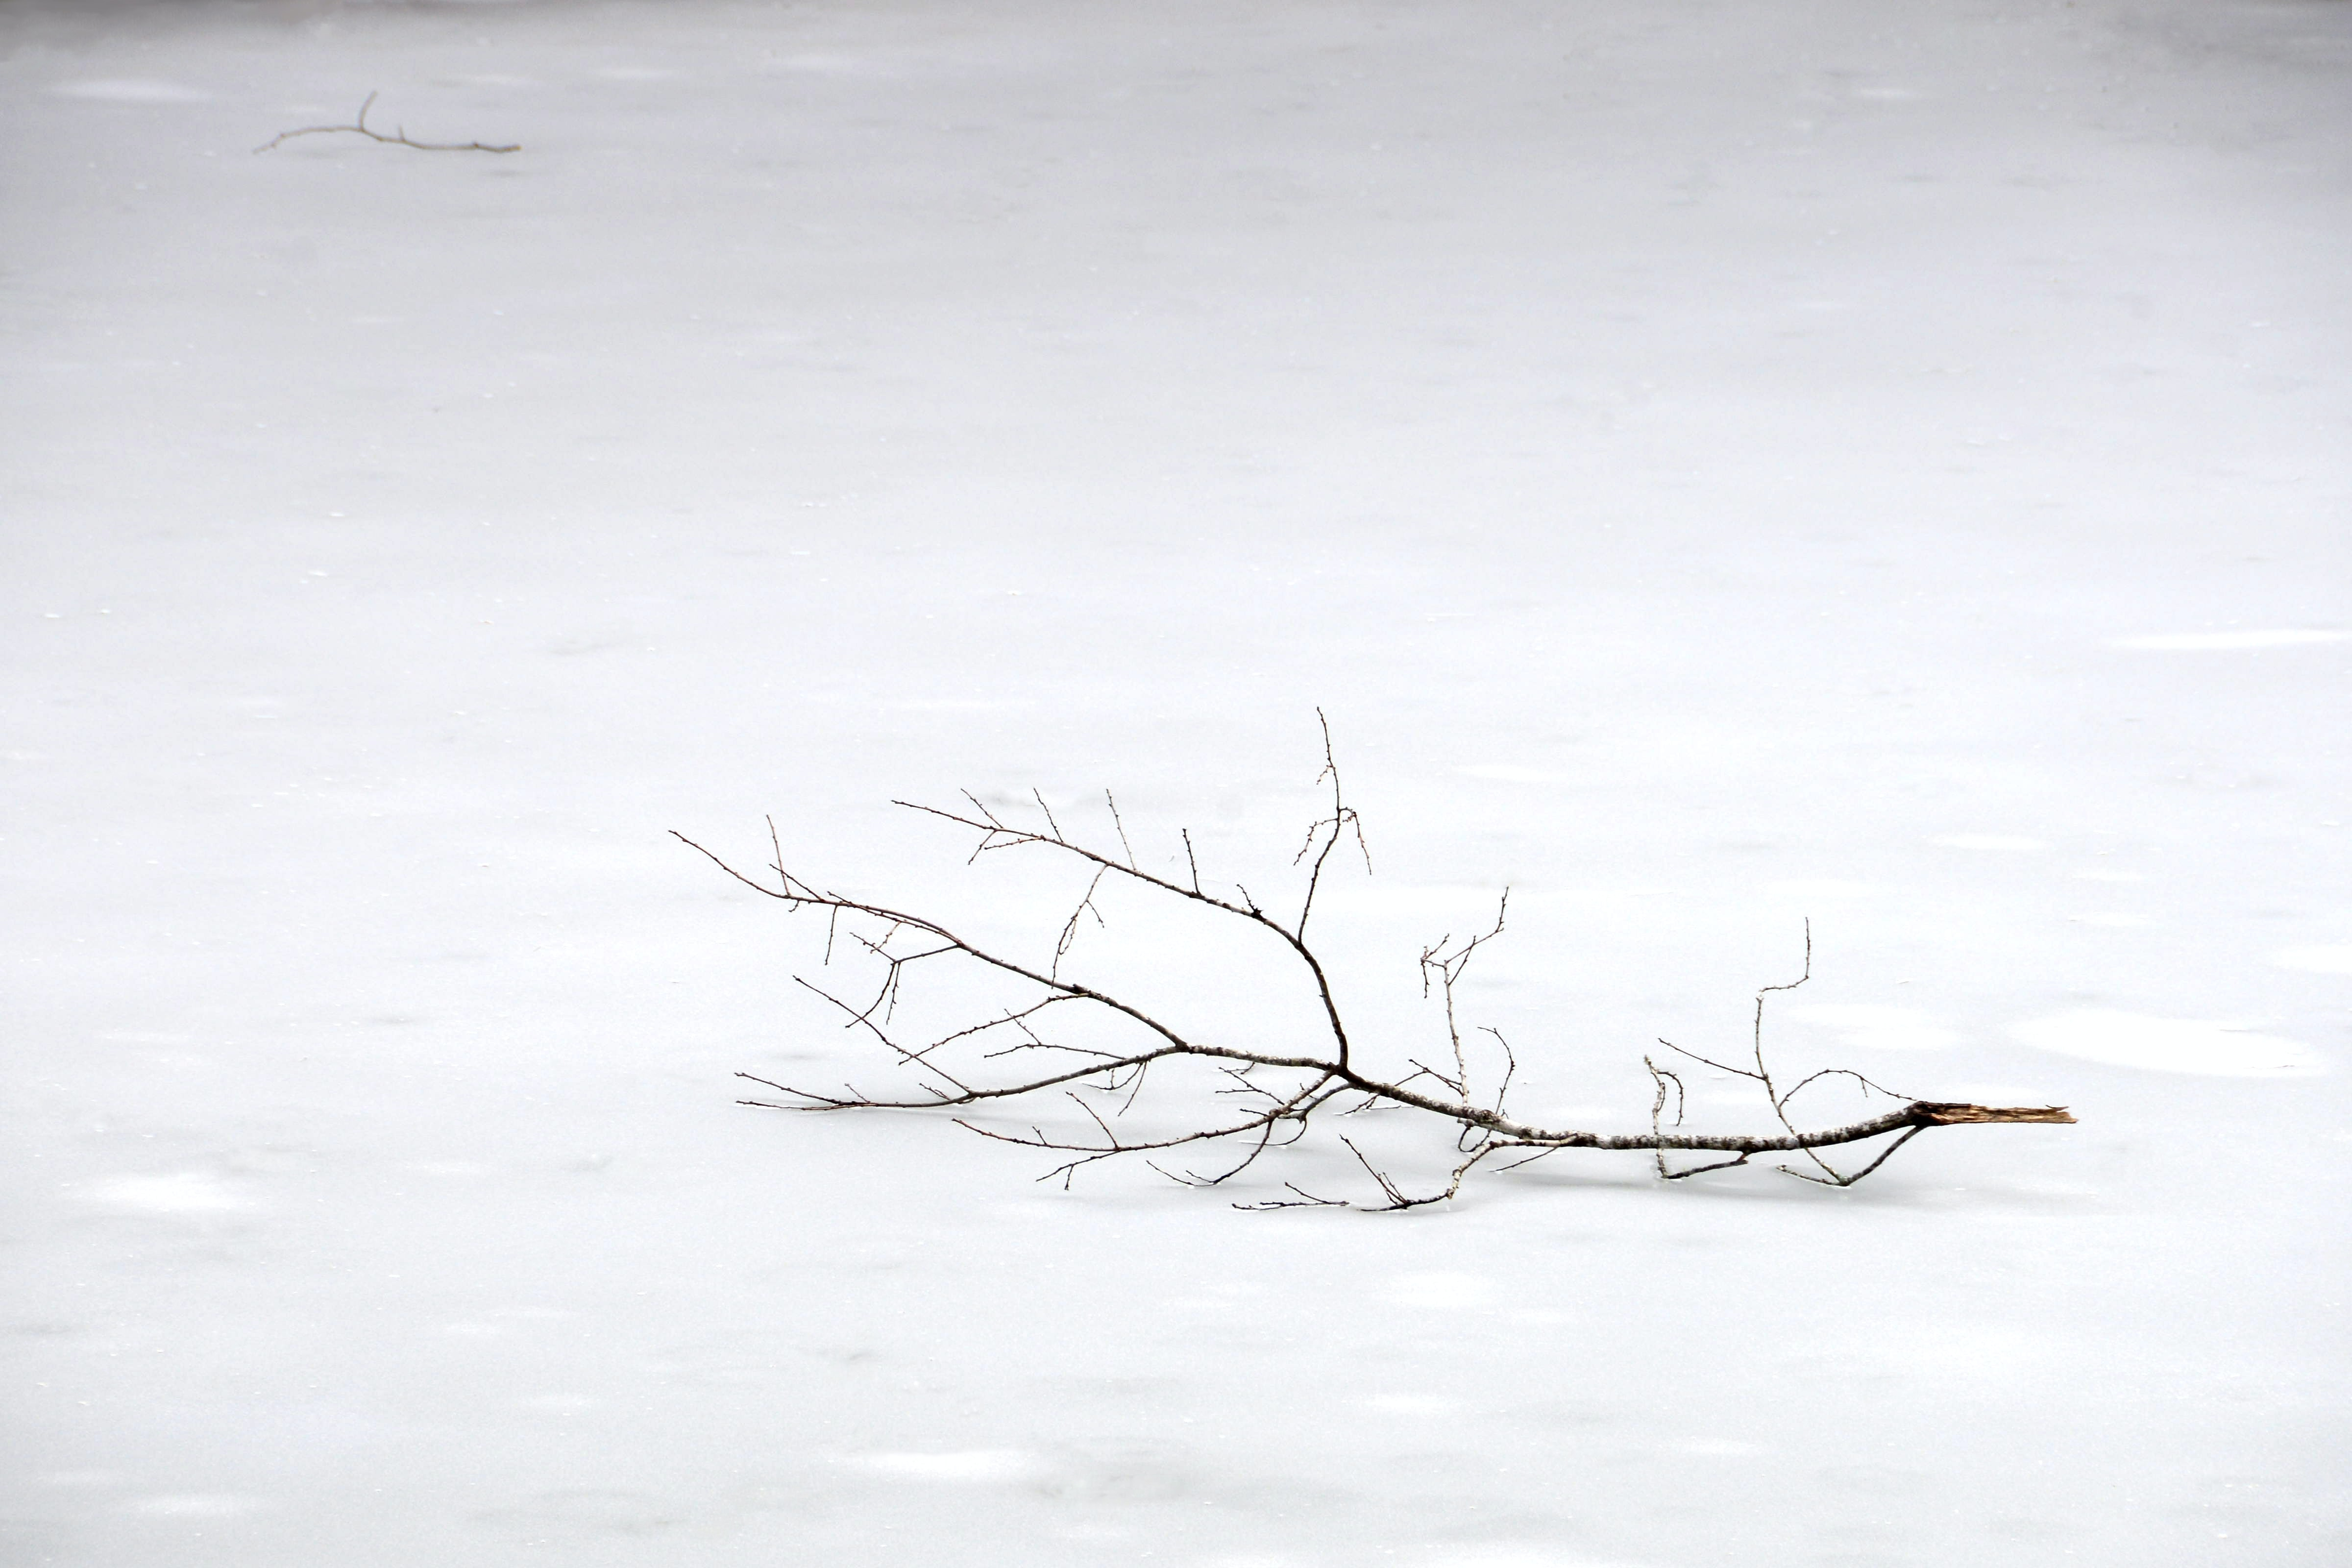 A large tree branch sitting in the snow